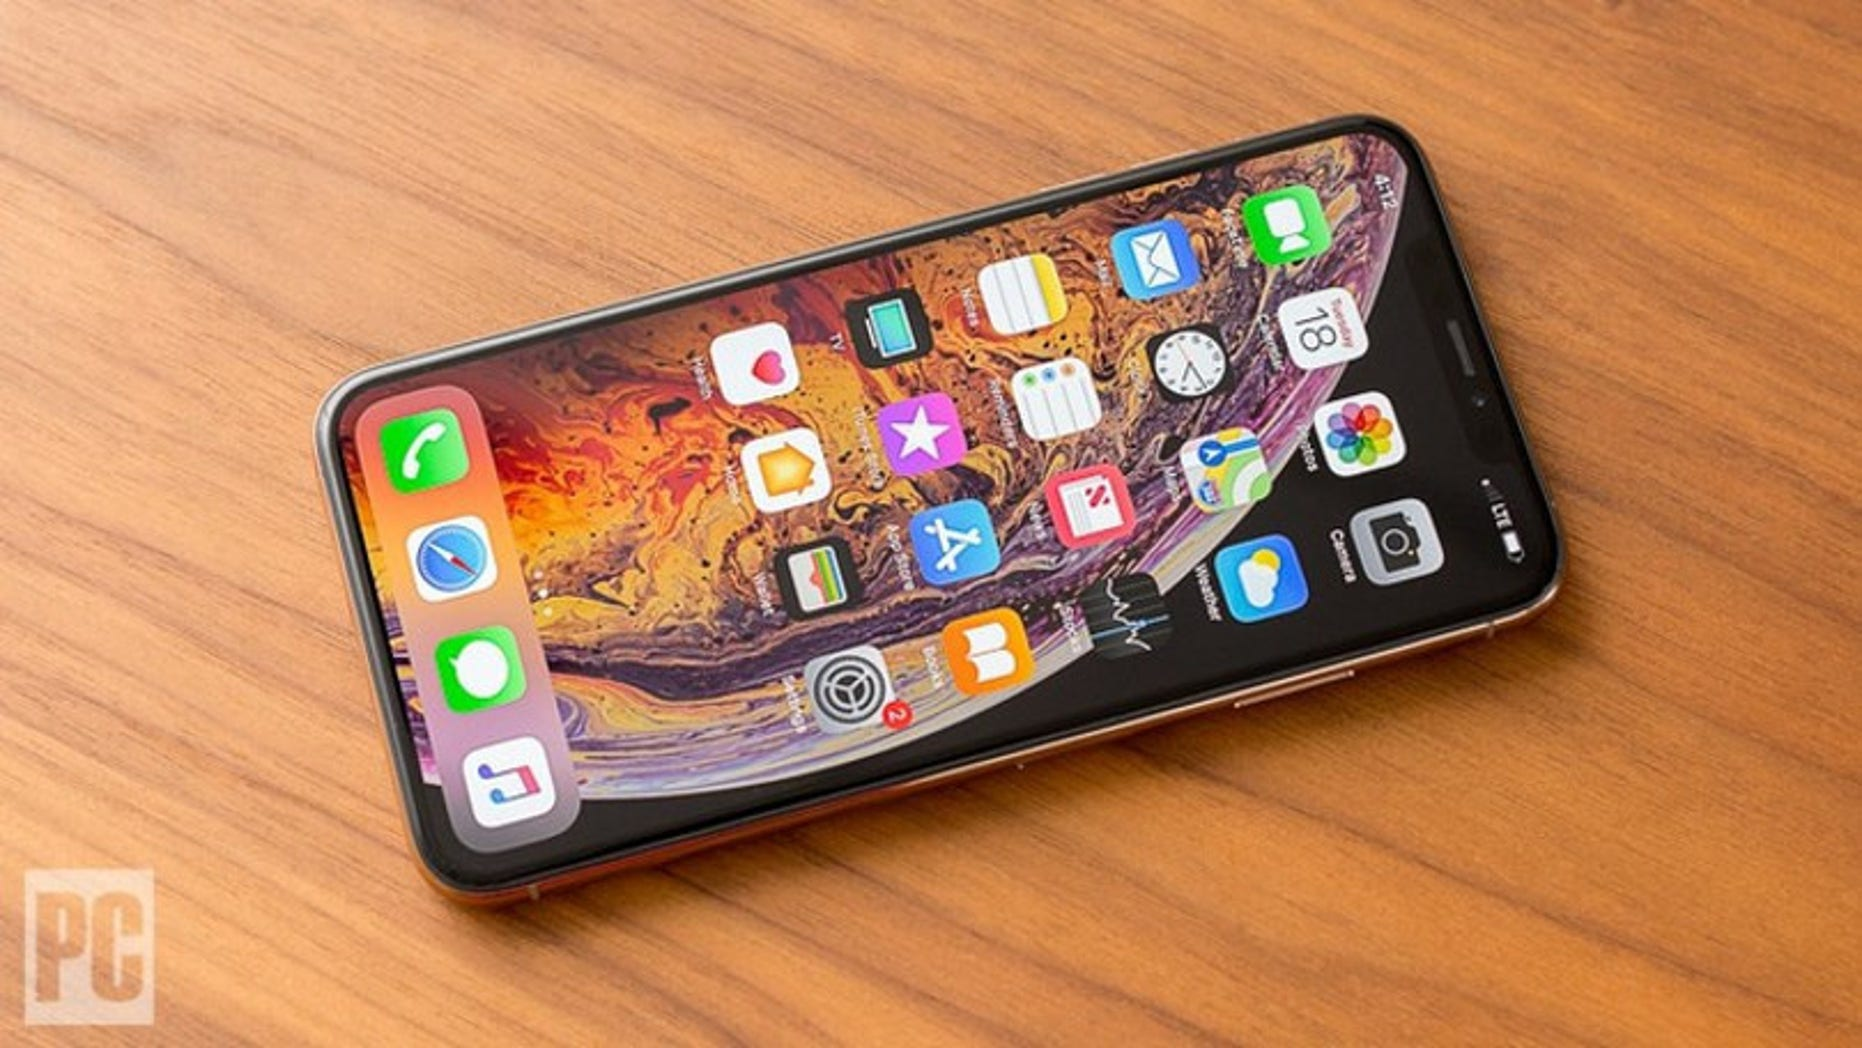 Apple's iOS 12.1 will fix iPhone XS, XS Max charging issue